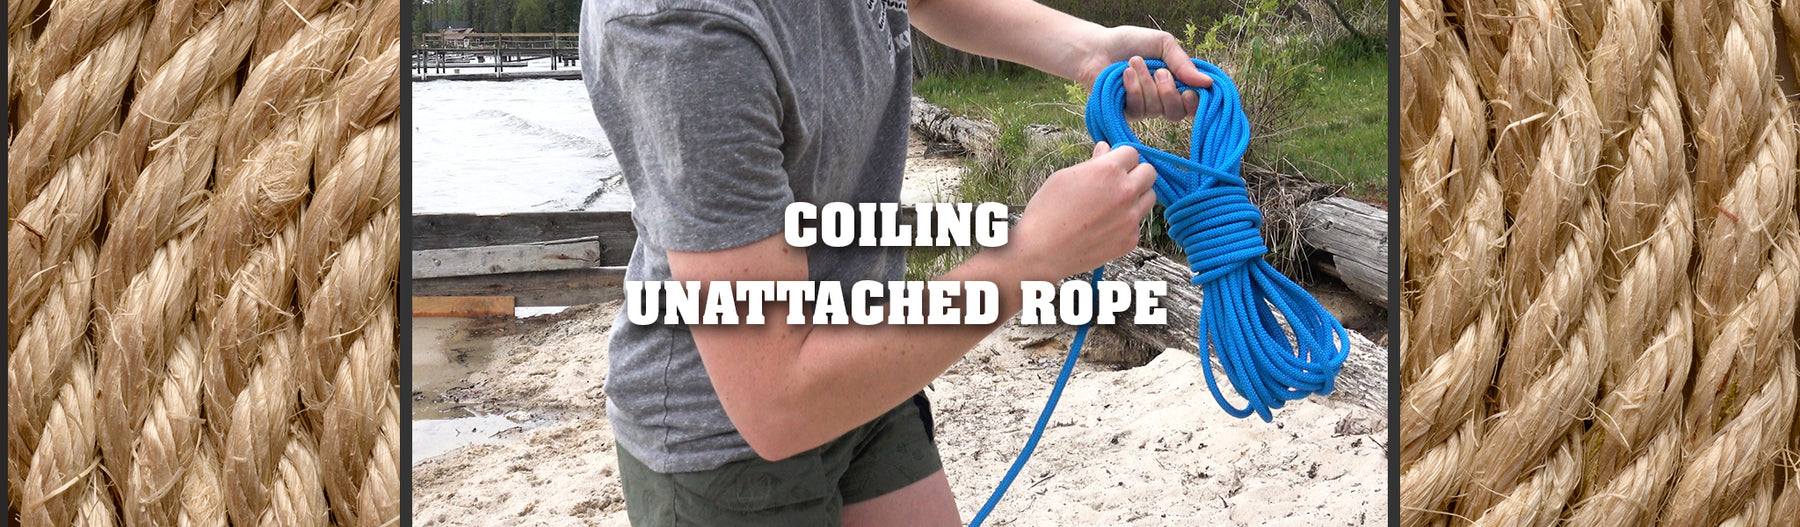 Coiling Unattached Rope